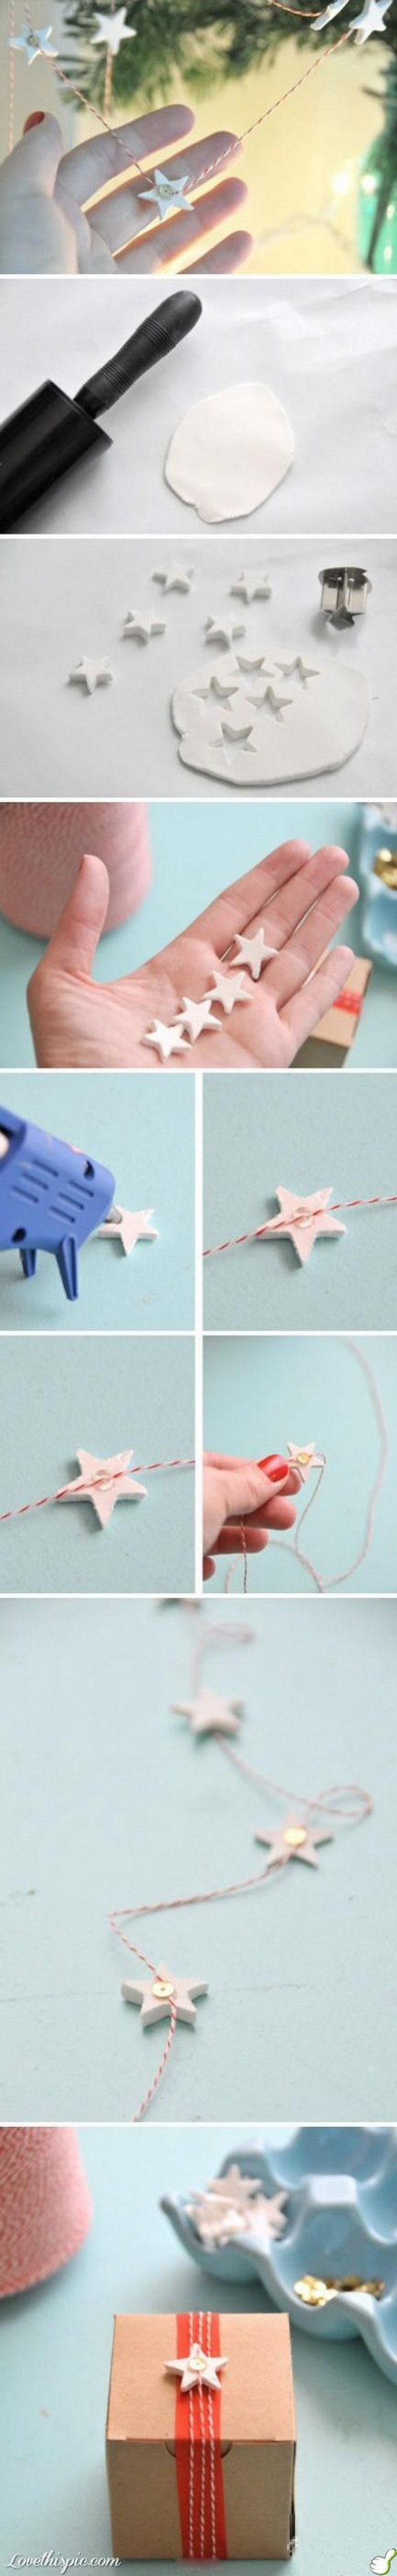 DIY Star Garland Gift Wrap. Make gift giving festive, modern, and fun this season with this easy star garland gift wrap DIY. Easy and Fun DIY Christmas crafts for You and Your Kids to Have Fun.